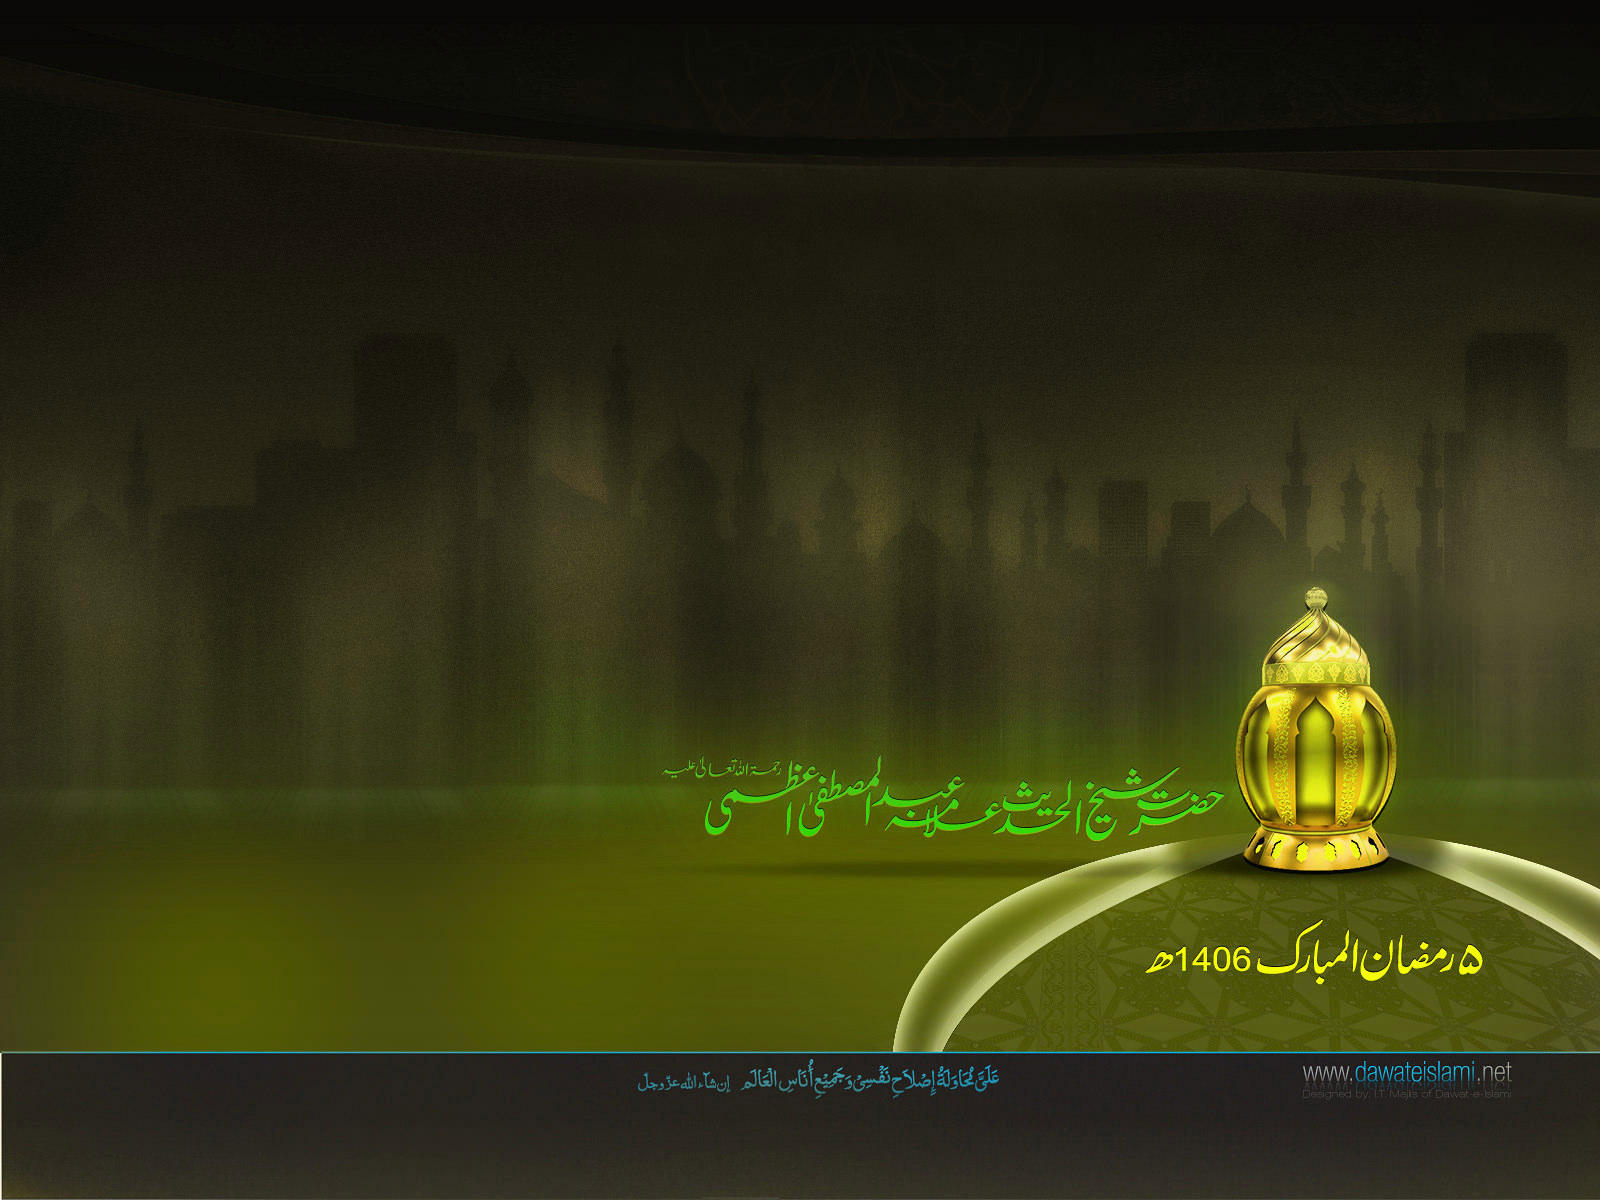 Wallpapers Faizan e Ramadan 27